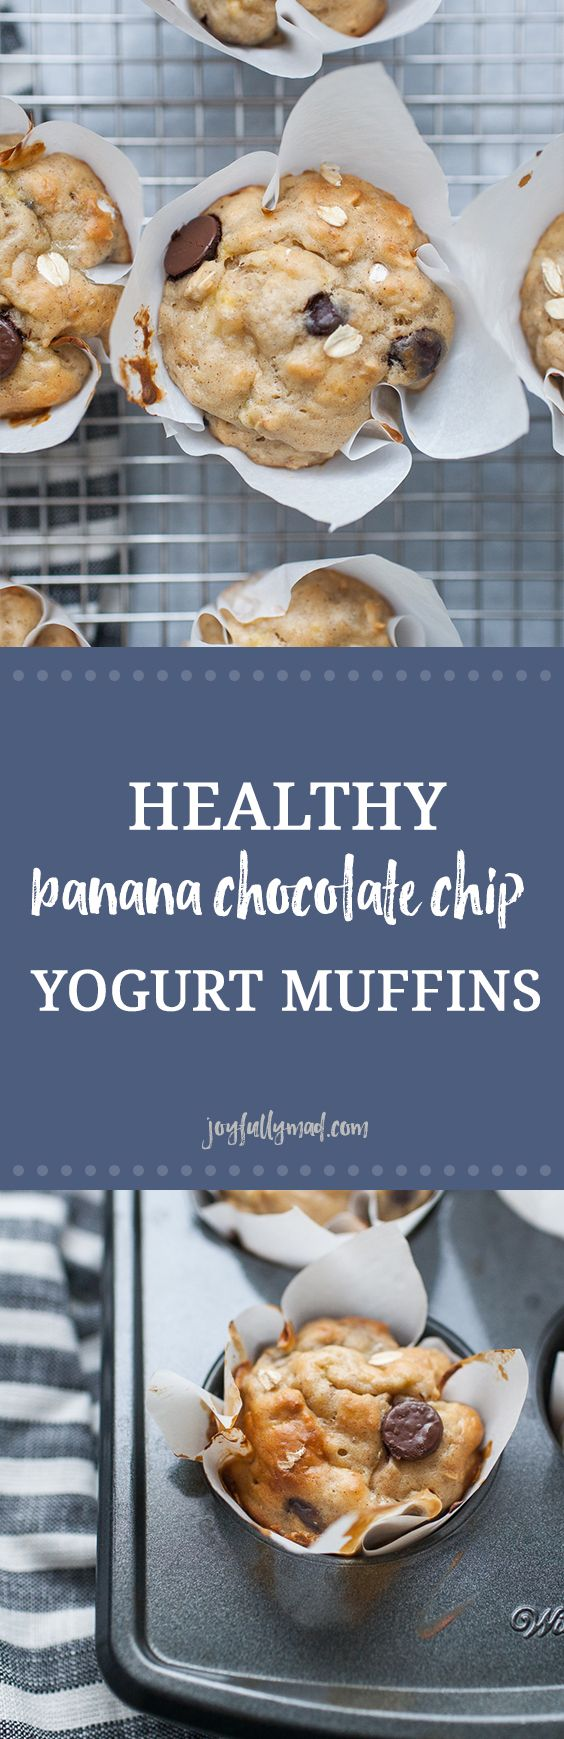 Healthy banana chocolate chip yogurt muffins are the perfect way to start your day! These healthy muffins have no added sugar, they are simply sweetened with bananas and chocolate chips! These oat filled muffins are gooey and soft. Made with flour, oats, yogurt, bananas and chocolate chips, they are a simple morning treat! #ad